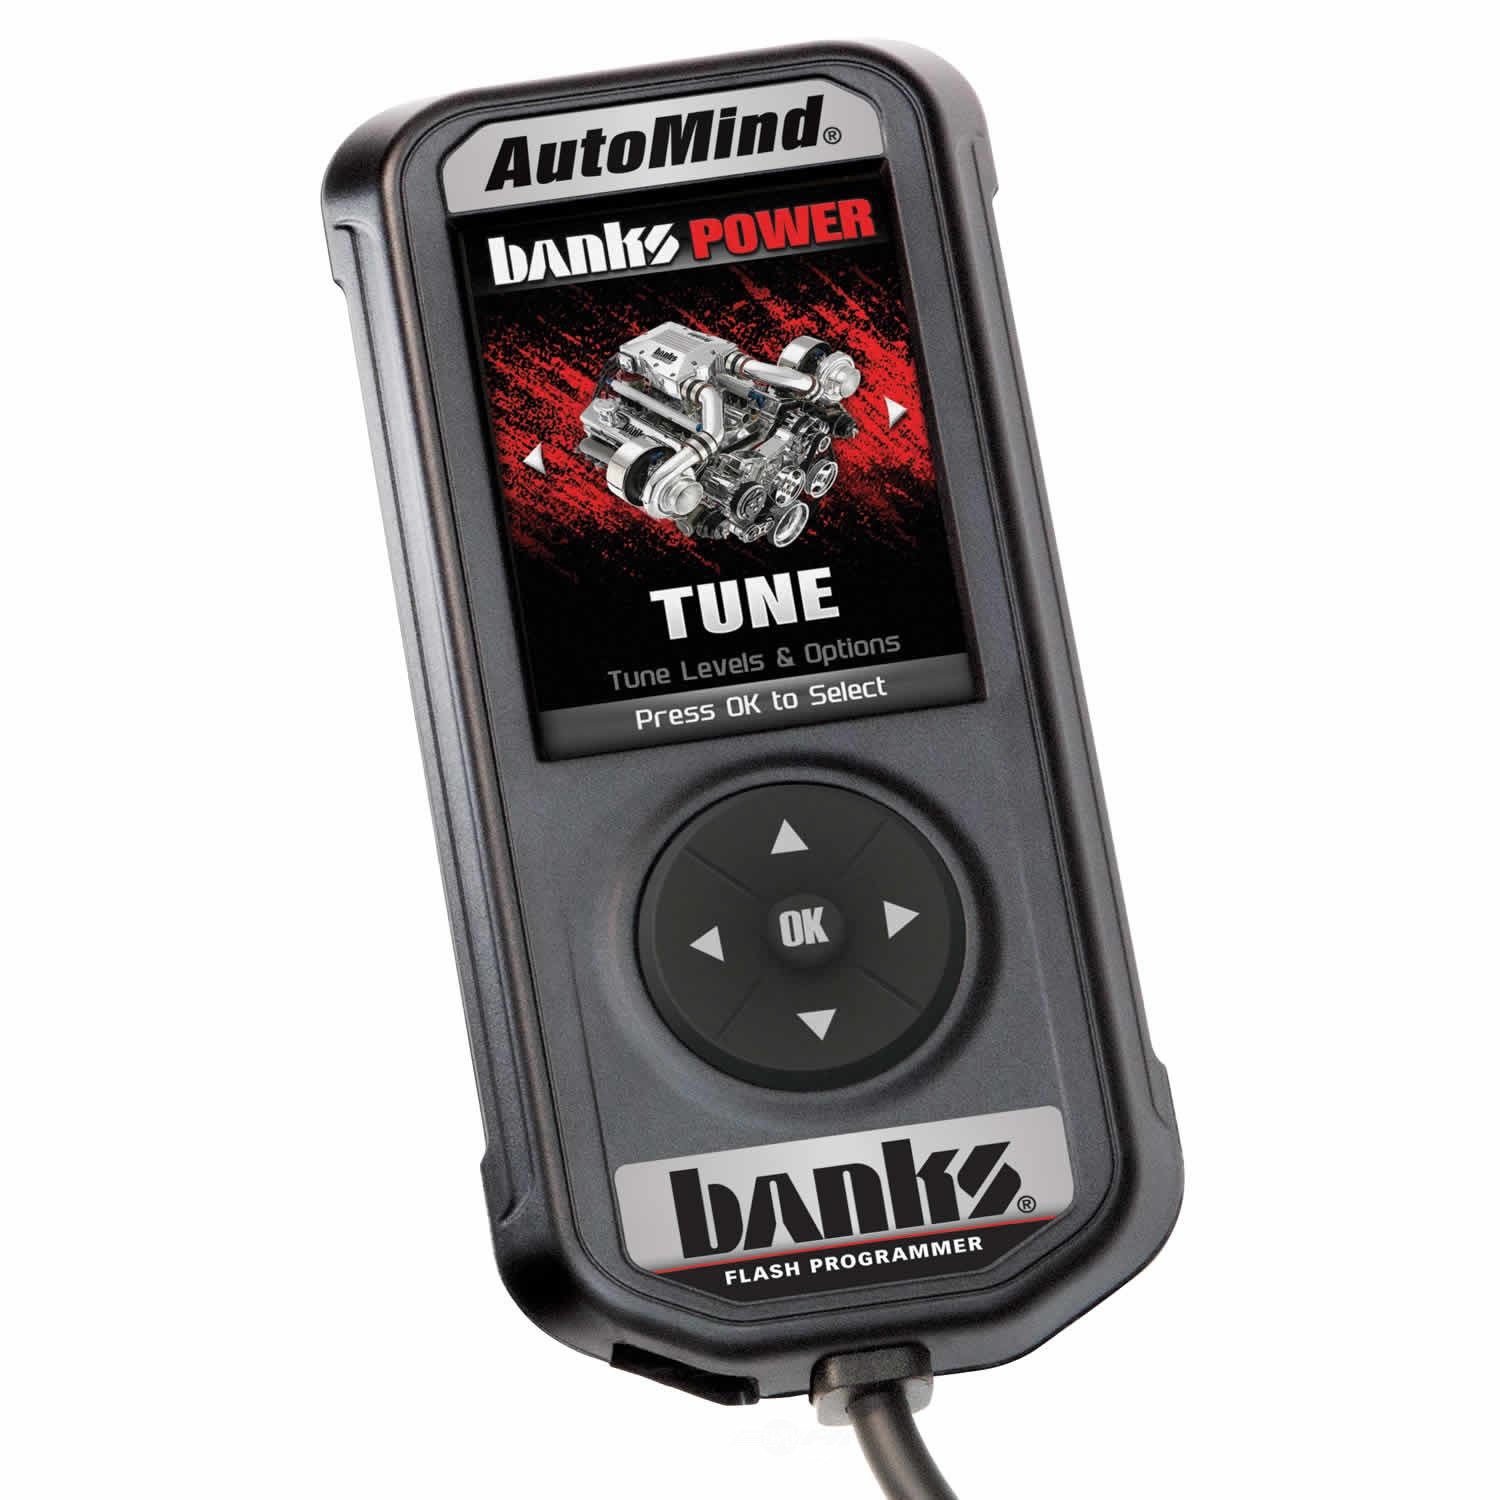 BANKS POWER - Hand Held AutoMind 2 Programmer - B1T 66411